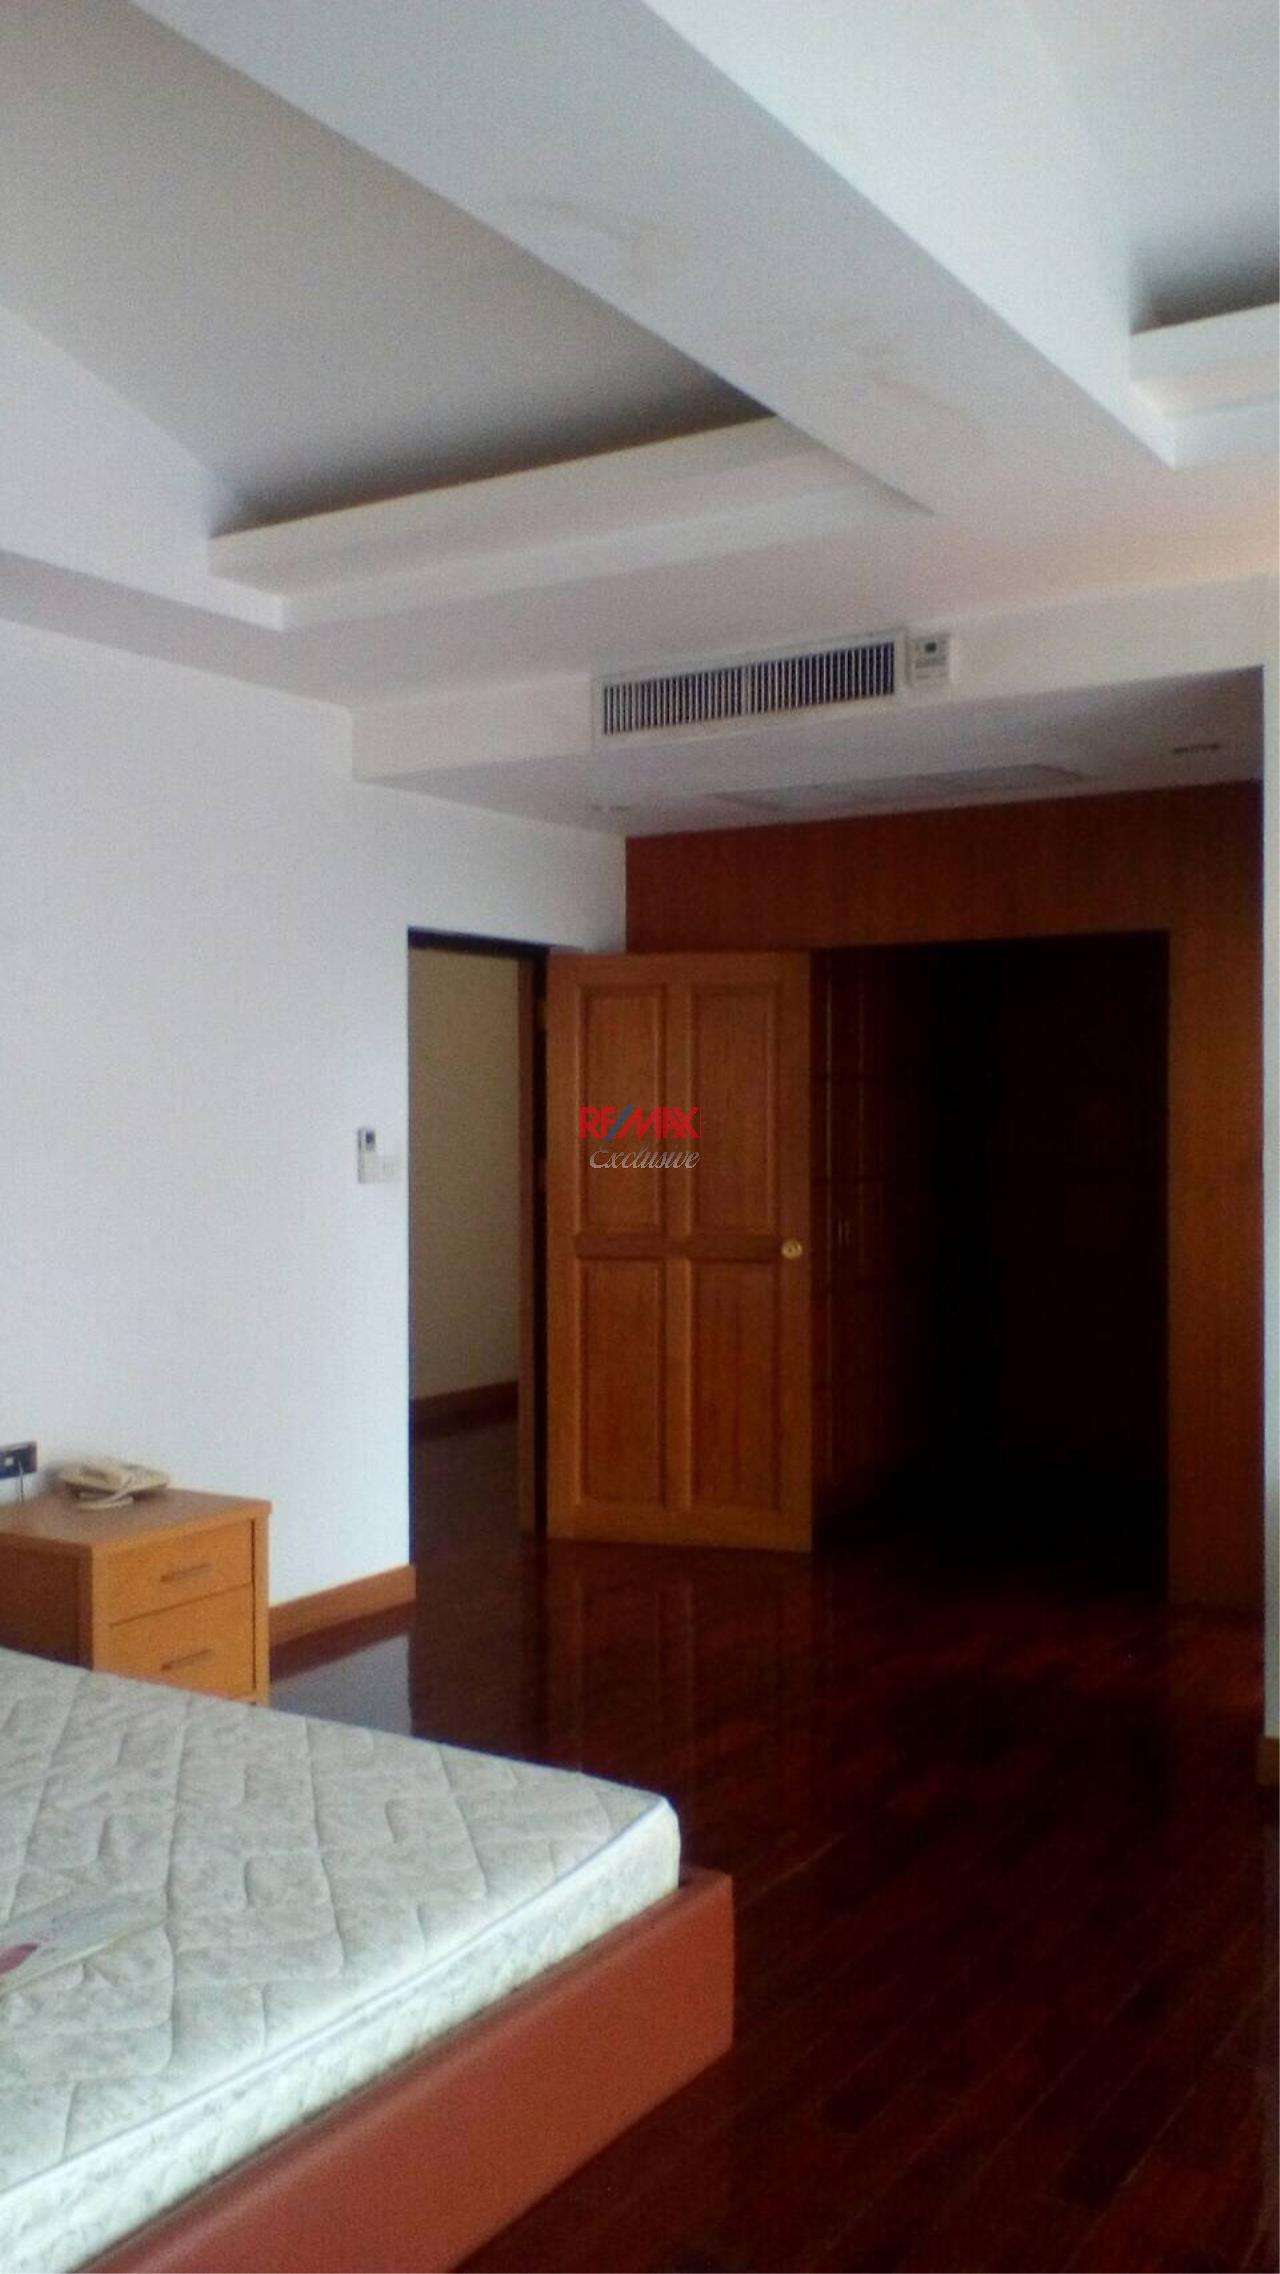 RE/MAX Exclusive Agency's Detached House 4 Bedrooms 200 Sq wah with Private Pool, For Rent 150,000 THB!! 8